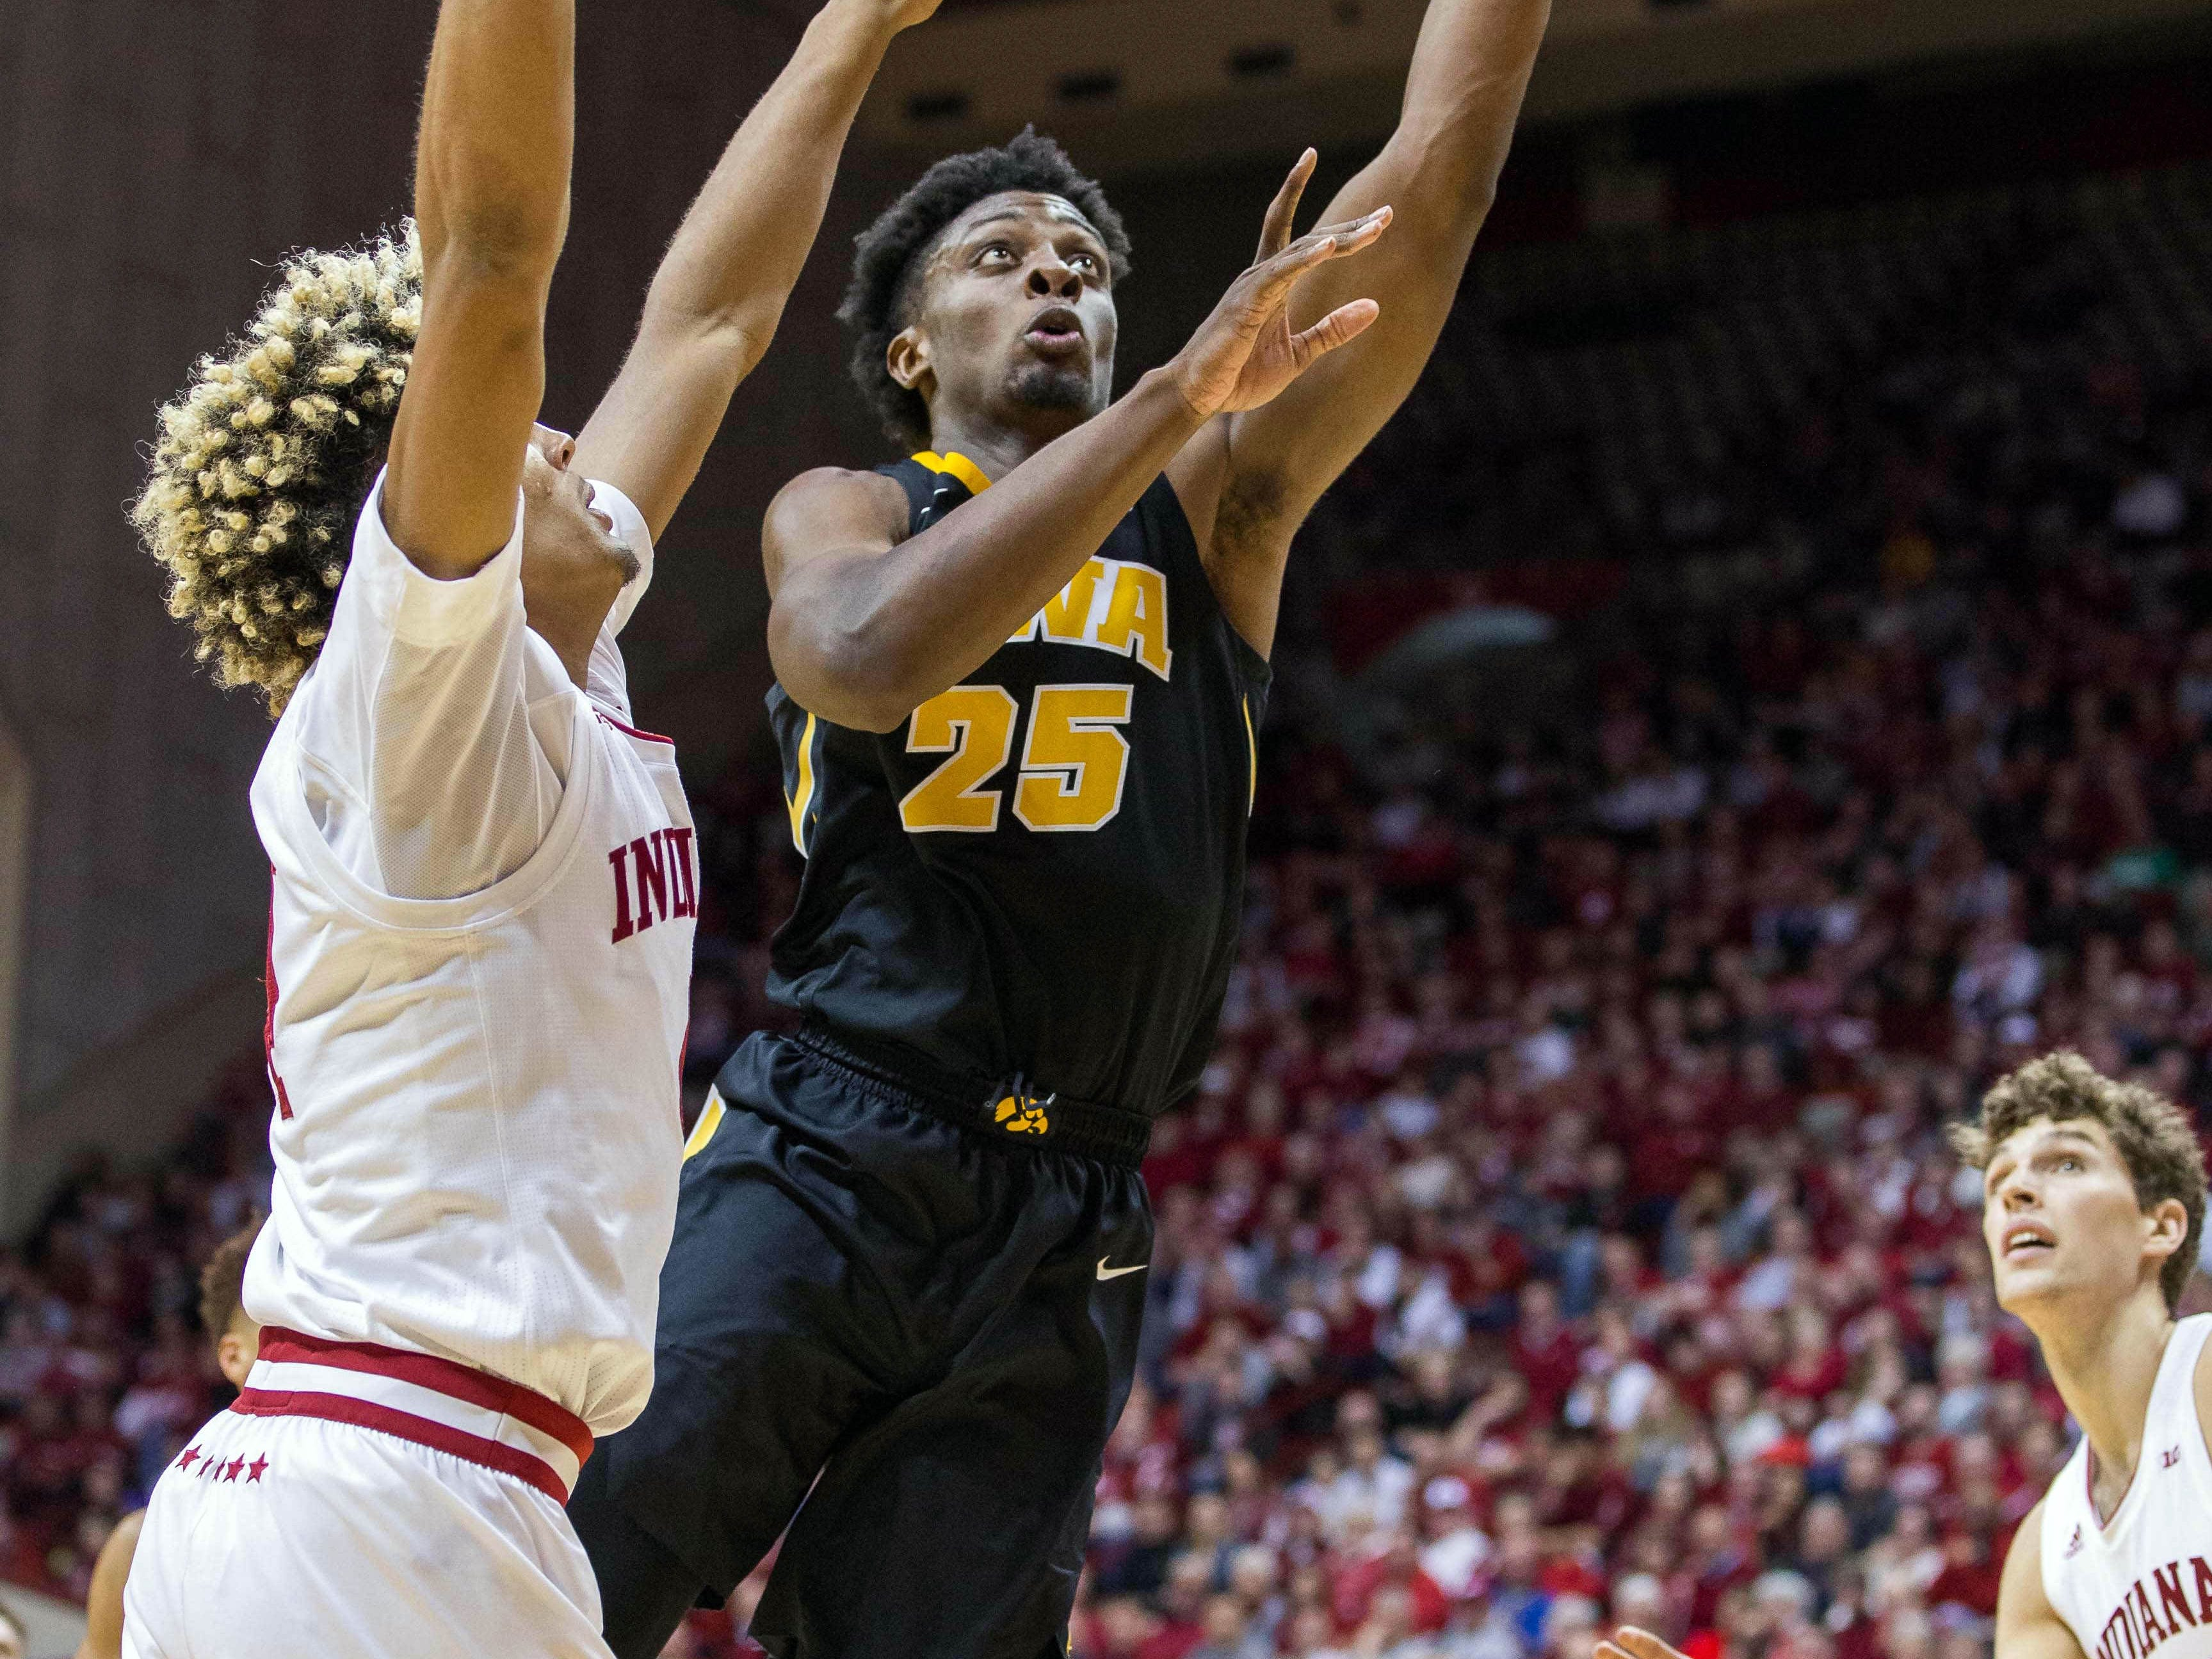 Iowa Hawkeyes forward Tyler Cook (25) shoots the ball over Indiana Hoosiers forward Jake Forrester (4) in the second half at Assembly Hall. Mandatory Credit: Trevor Ruszkowski-USA TODAY Sports